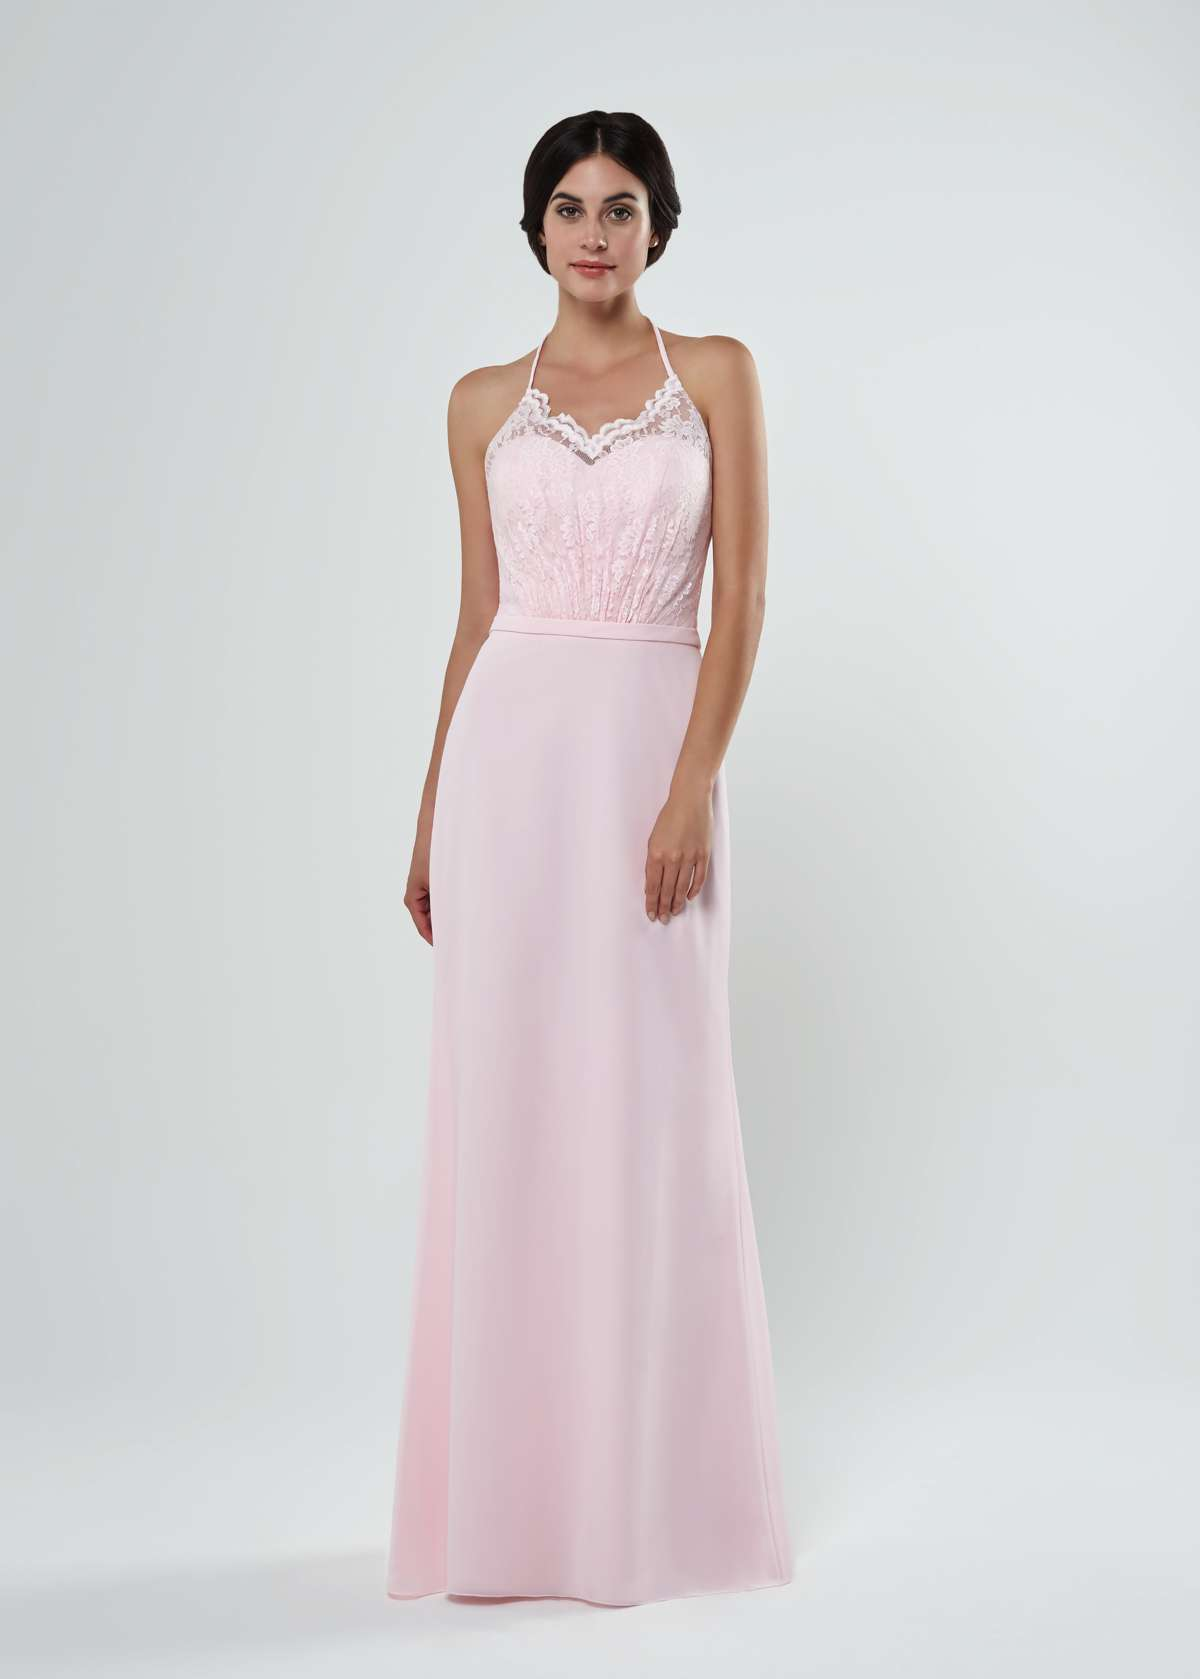 New bridesmaid dresses from phil collins bridal love our wedding 1hires pcb265 ombrellifo Image collections